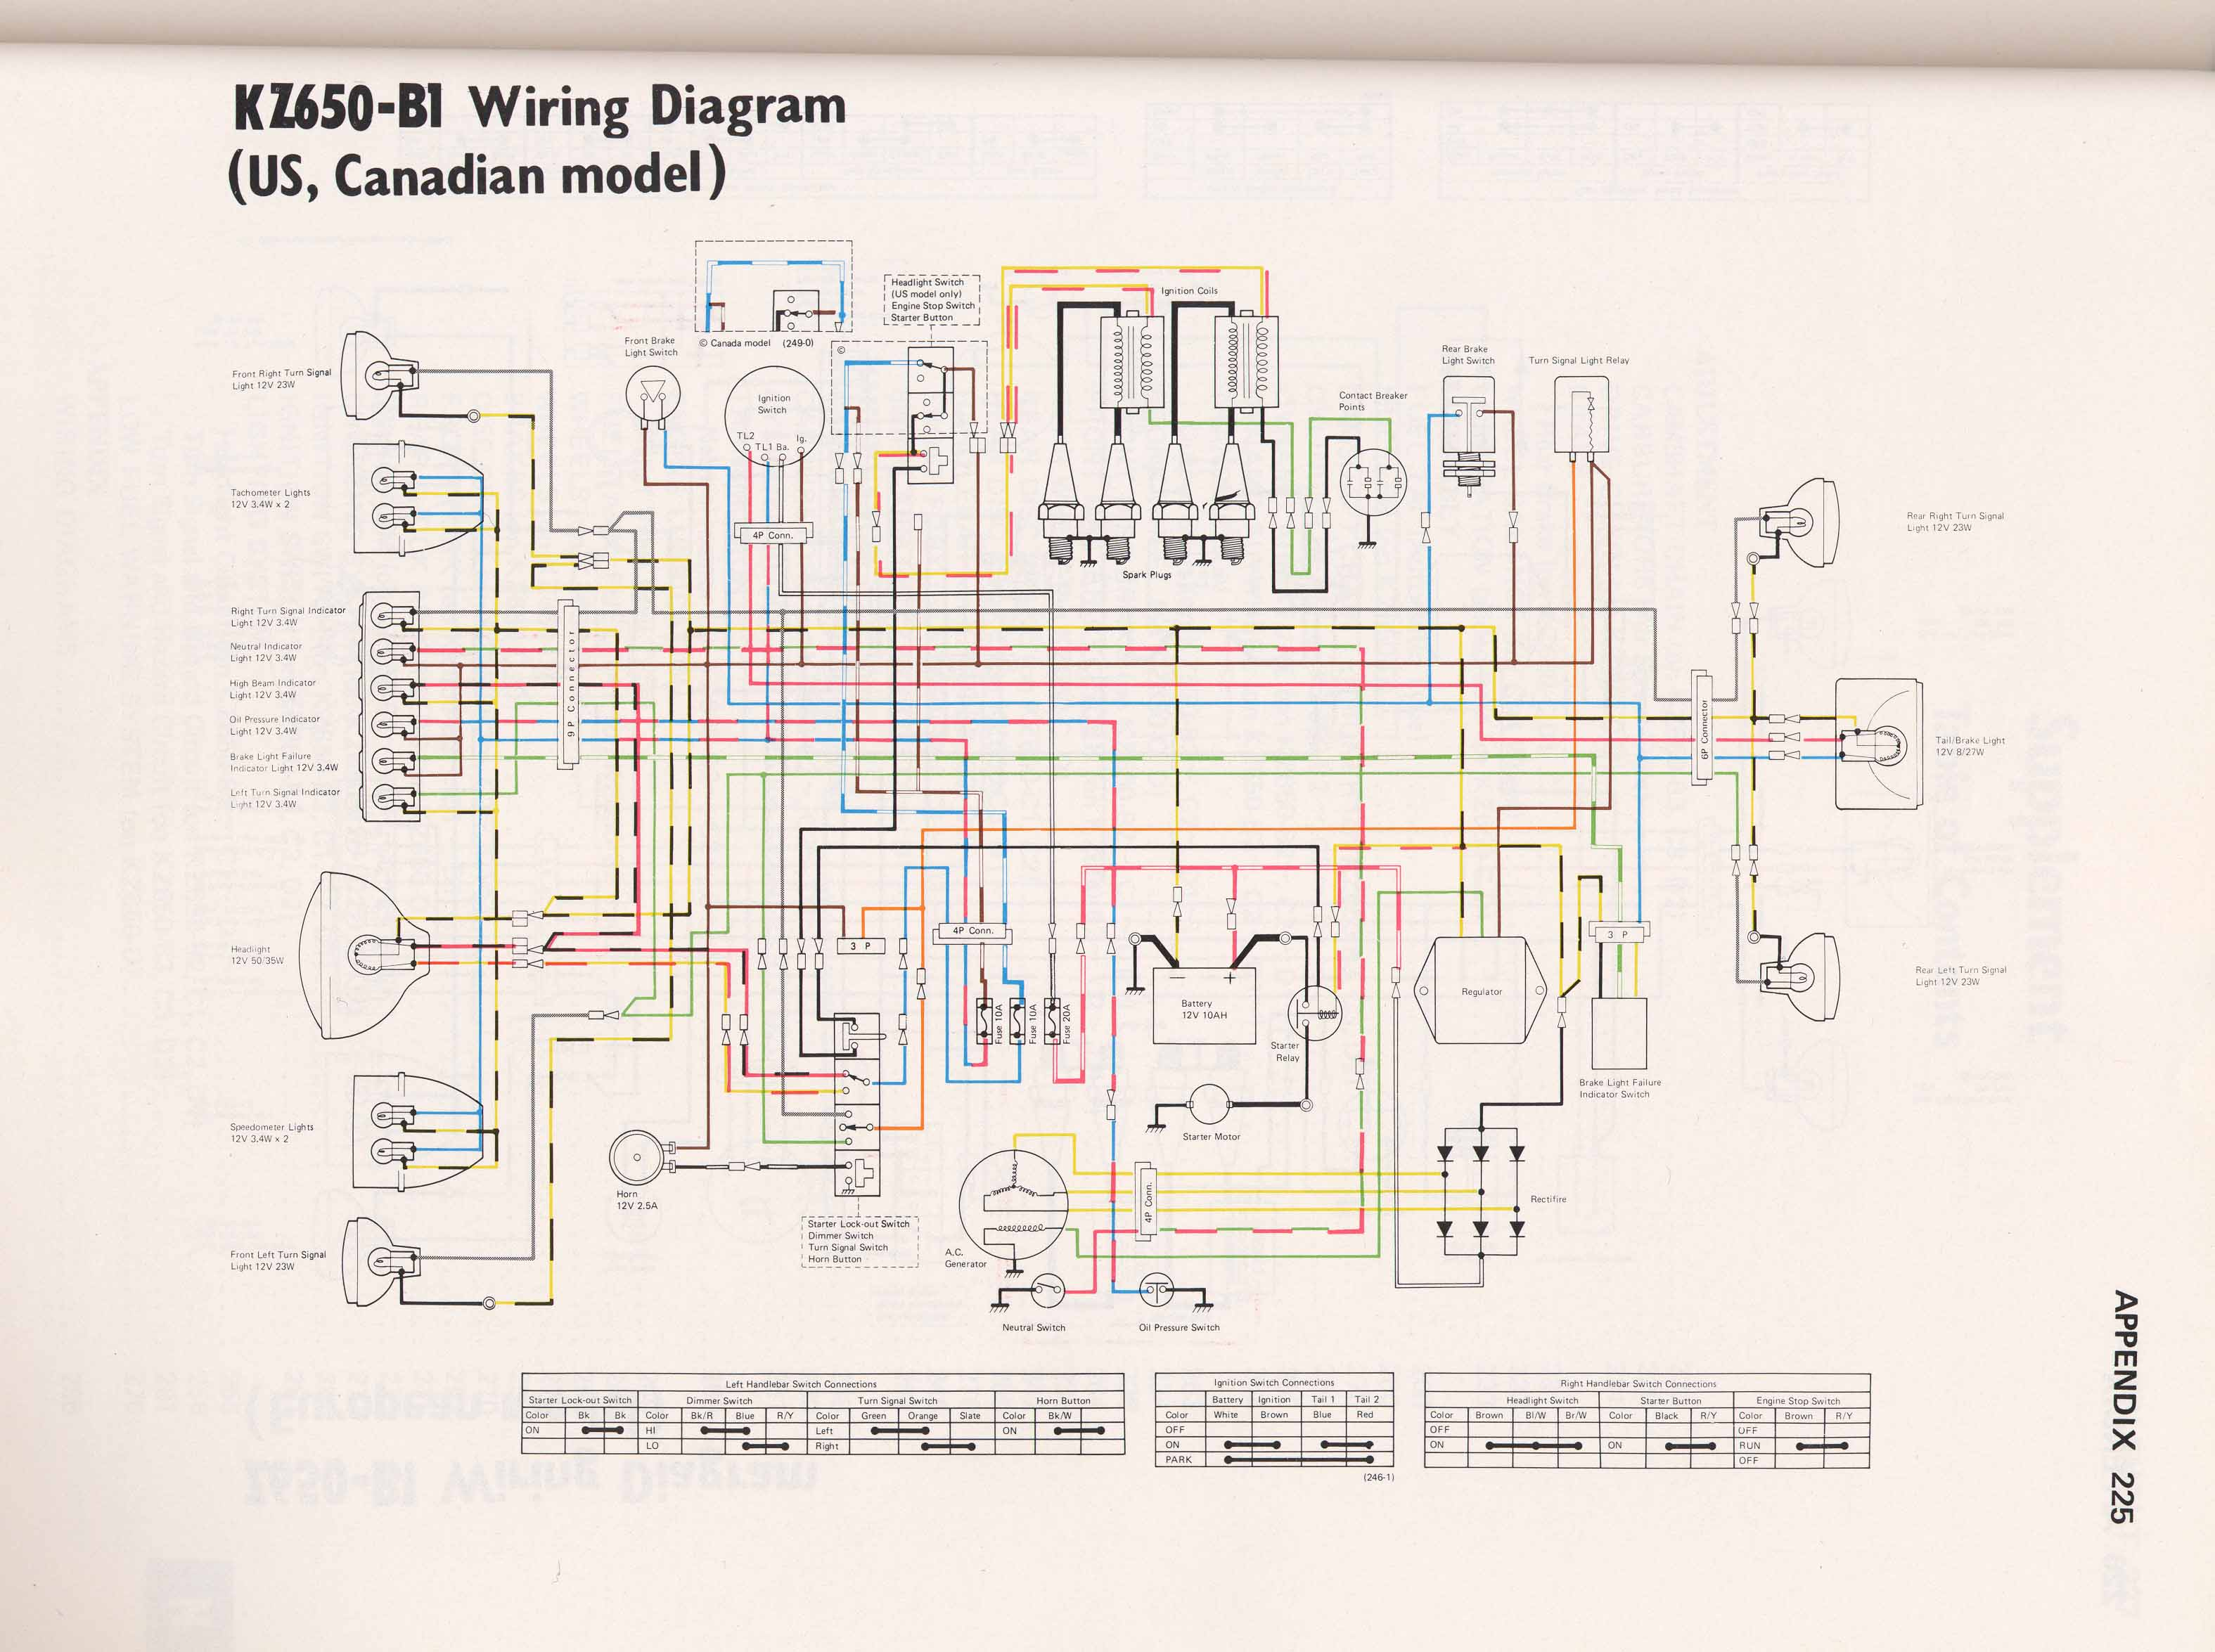 Kz1300 Wiring Diagram - Wiring Diagram Dash on kz650 wiring diagram, z400 wiring diagram, klr650 wiring diagram, ninja 250r wiring diagram, z1000 wiring diagram, fj1100 wiring diagram, kz1000 wiring diagram, kz440 wiring diagram, zx7r wiring diagram, gs 750 wiring diagram, kz750 wiring diagram, kz400 wiring diagram, xs650 wiring diagram, honda wiring diagram, zl1000 wiring diagram, ex500 wiring diagram, ex250 wiring diagram, vulcan 1500 wiring diagram, kz200 wiring diagram, ke175 wiring diagram,